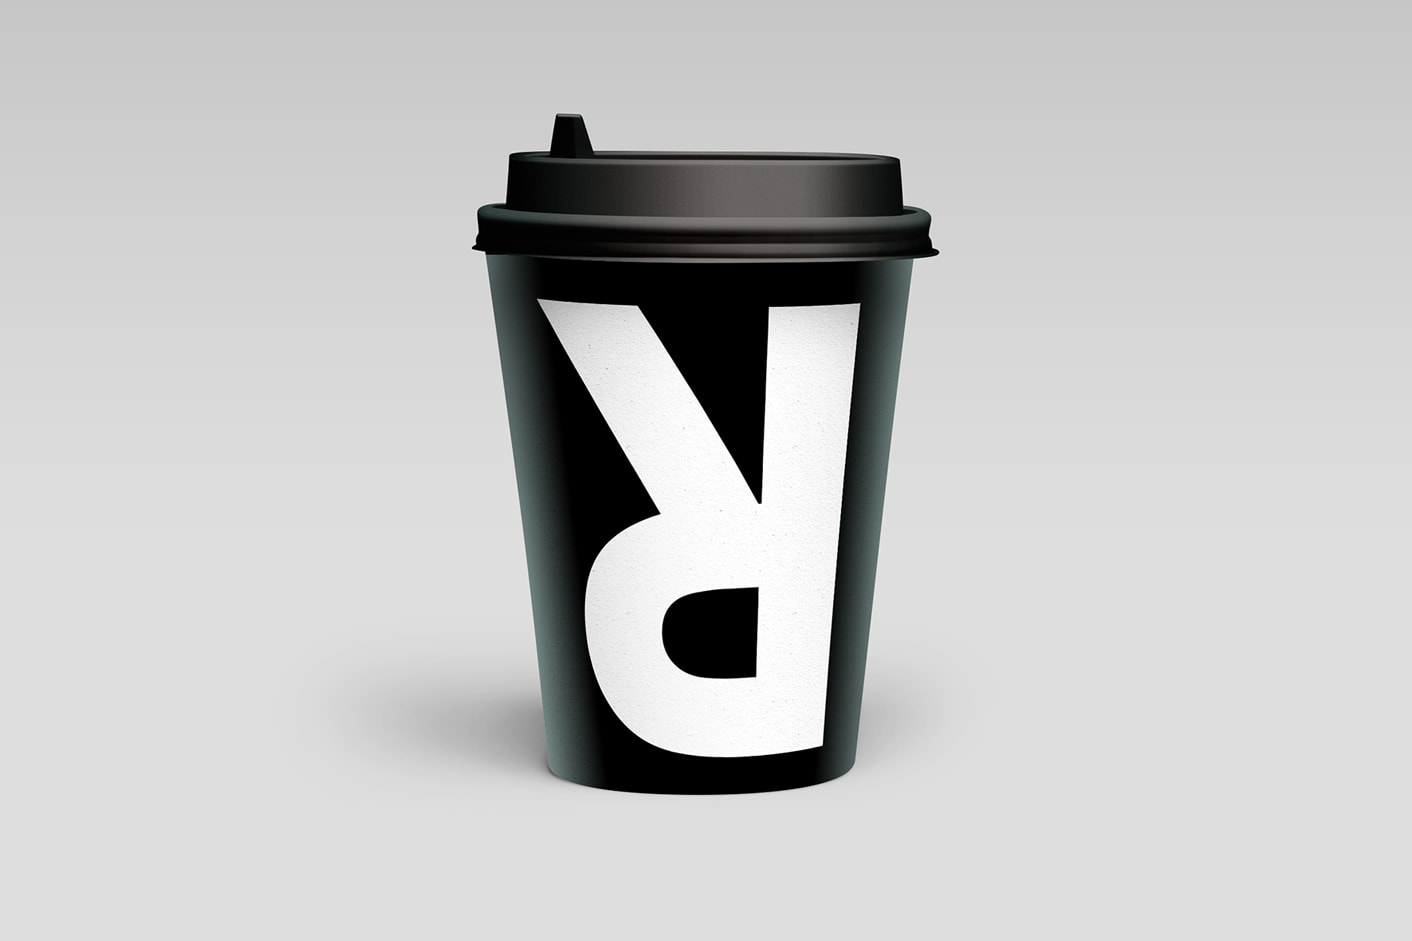 Rabbit Coffee brand logo on a coffee cup